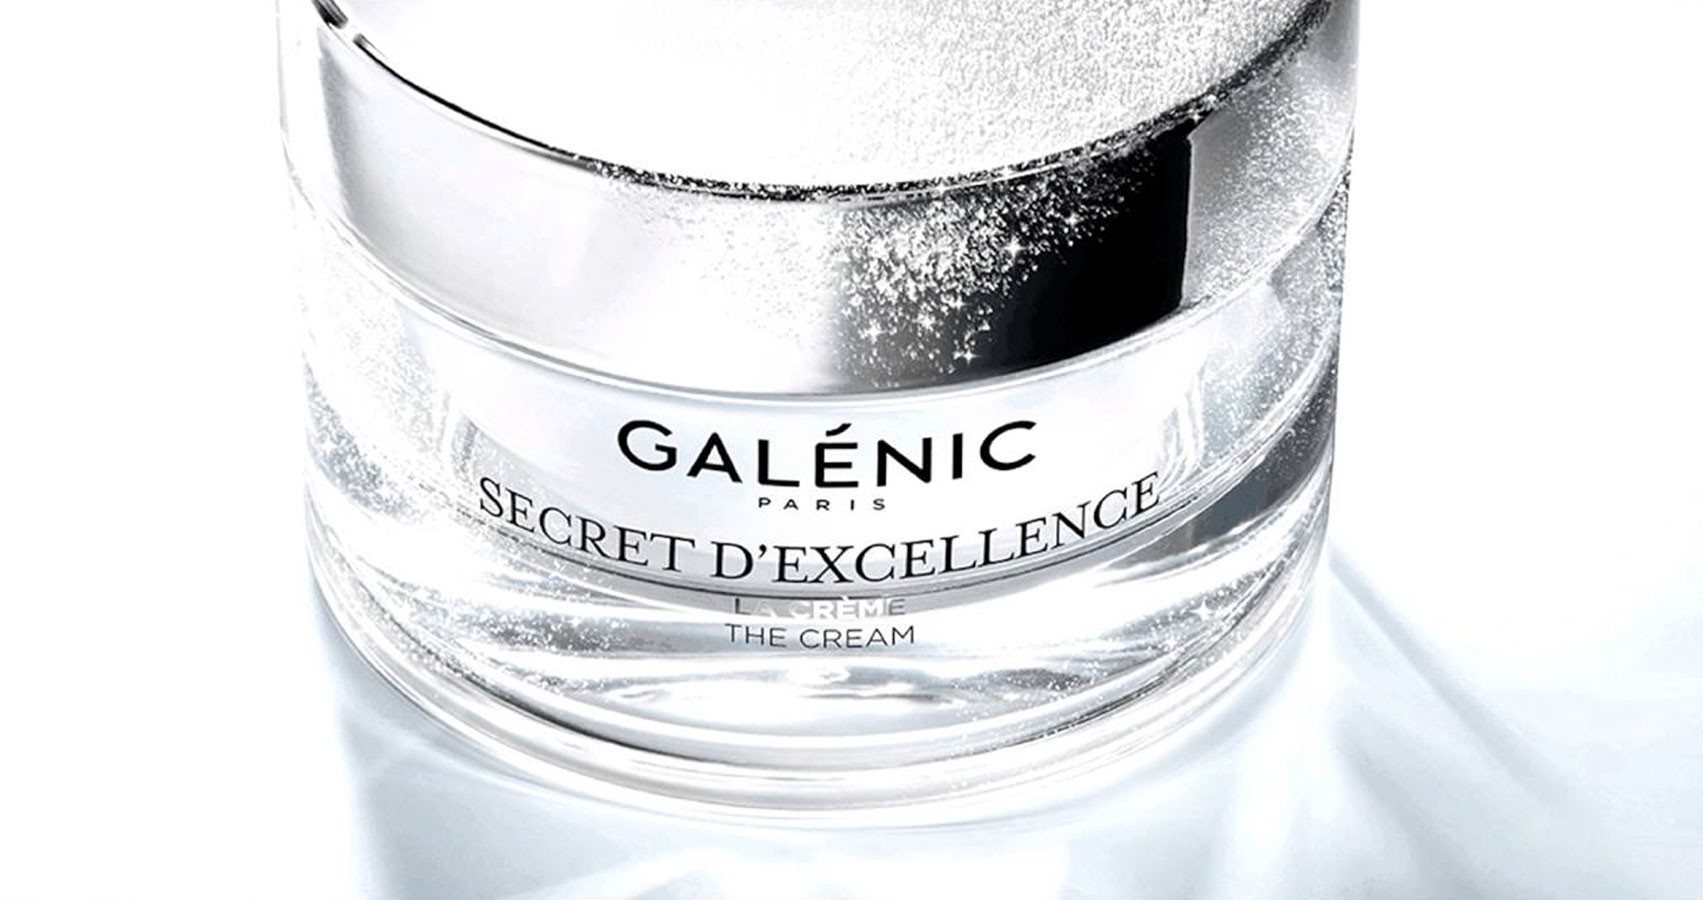 Galenic Secret de excellence